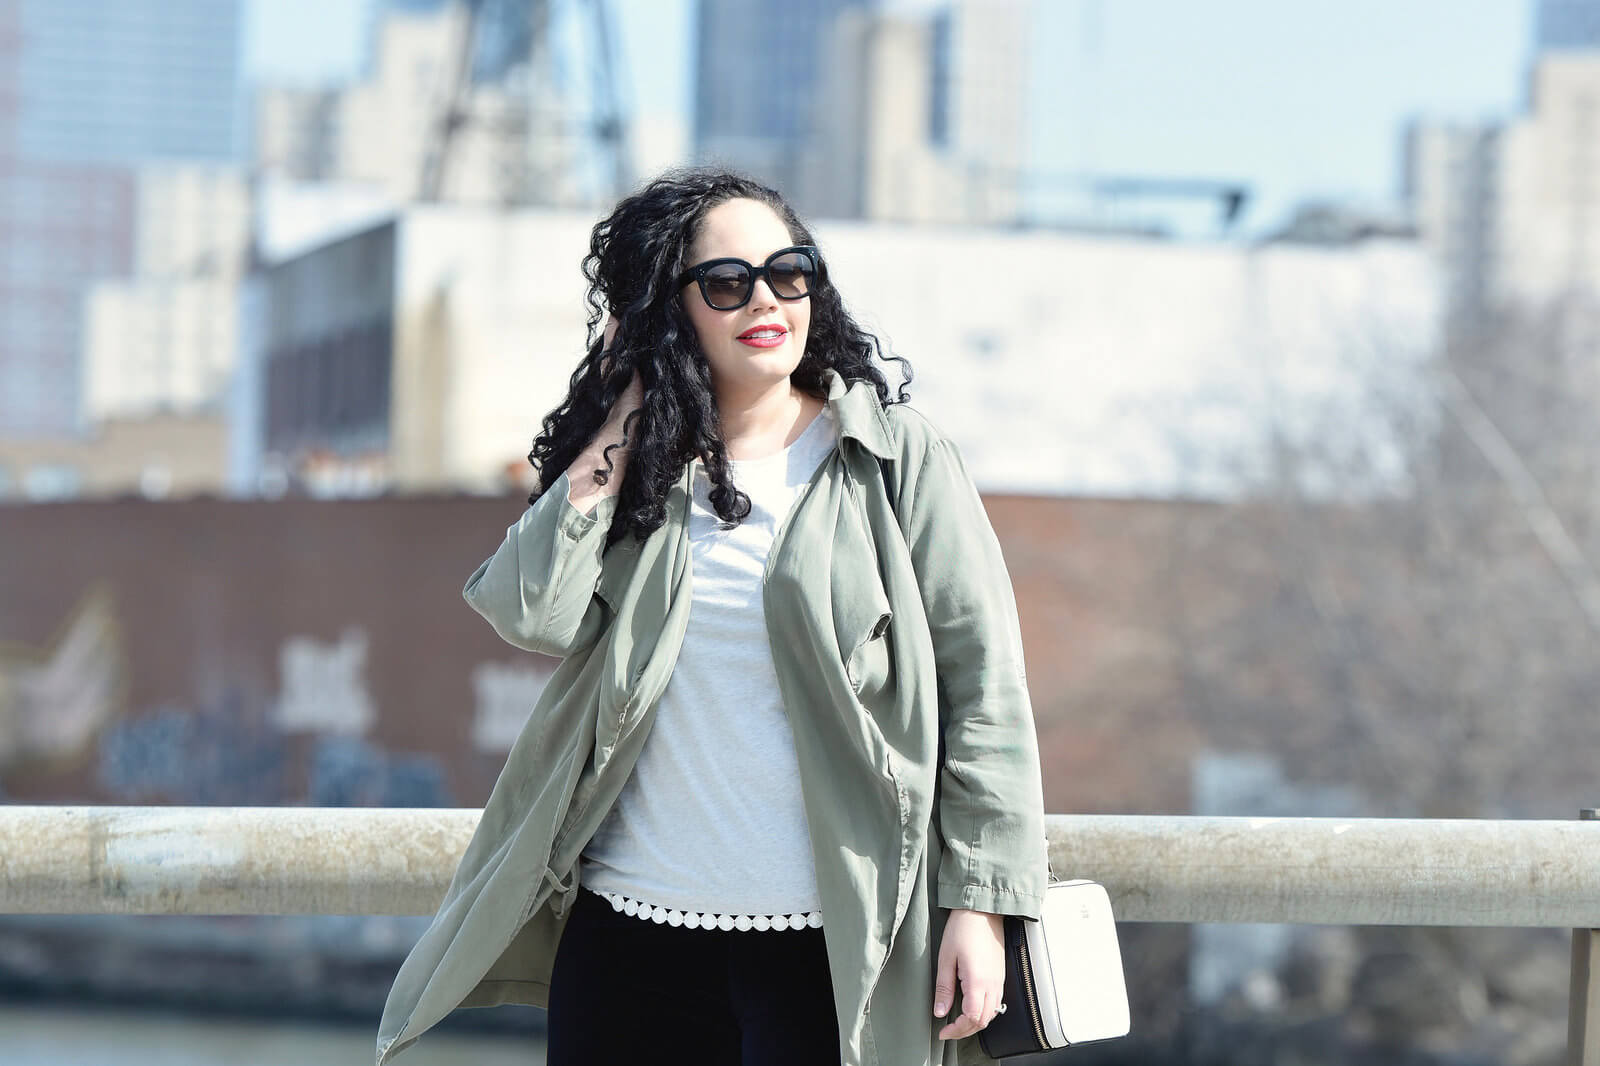 Must Have Of The Moment, Leggings via @GirlWithCurves #fashion #style #outfit #leggings #plussize #plussizefashion #utilityjacket